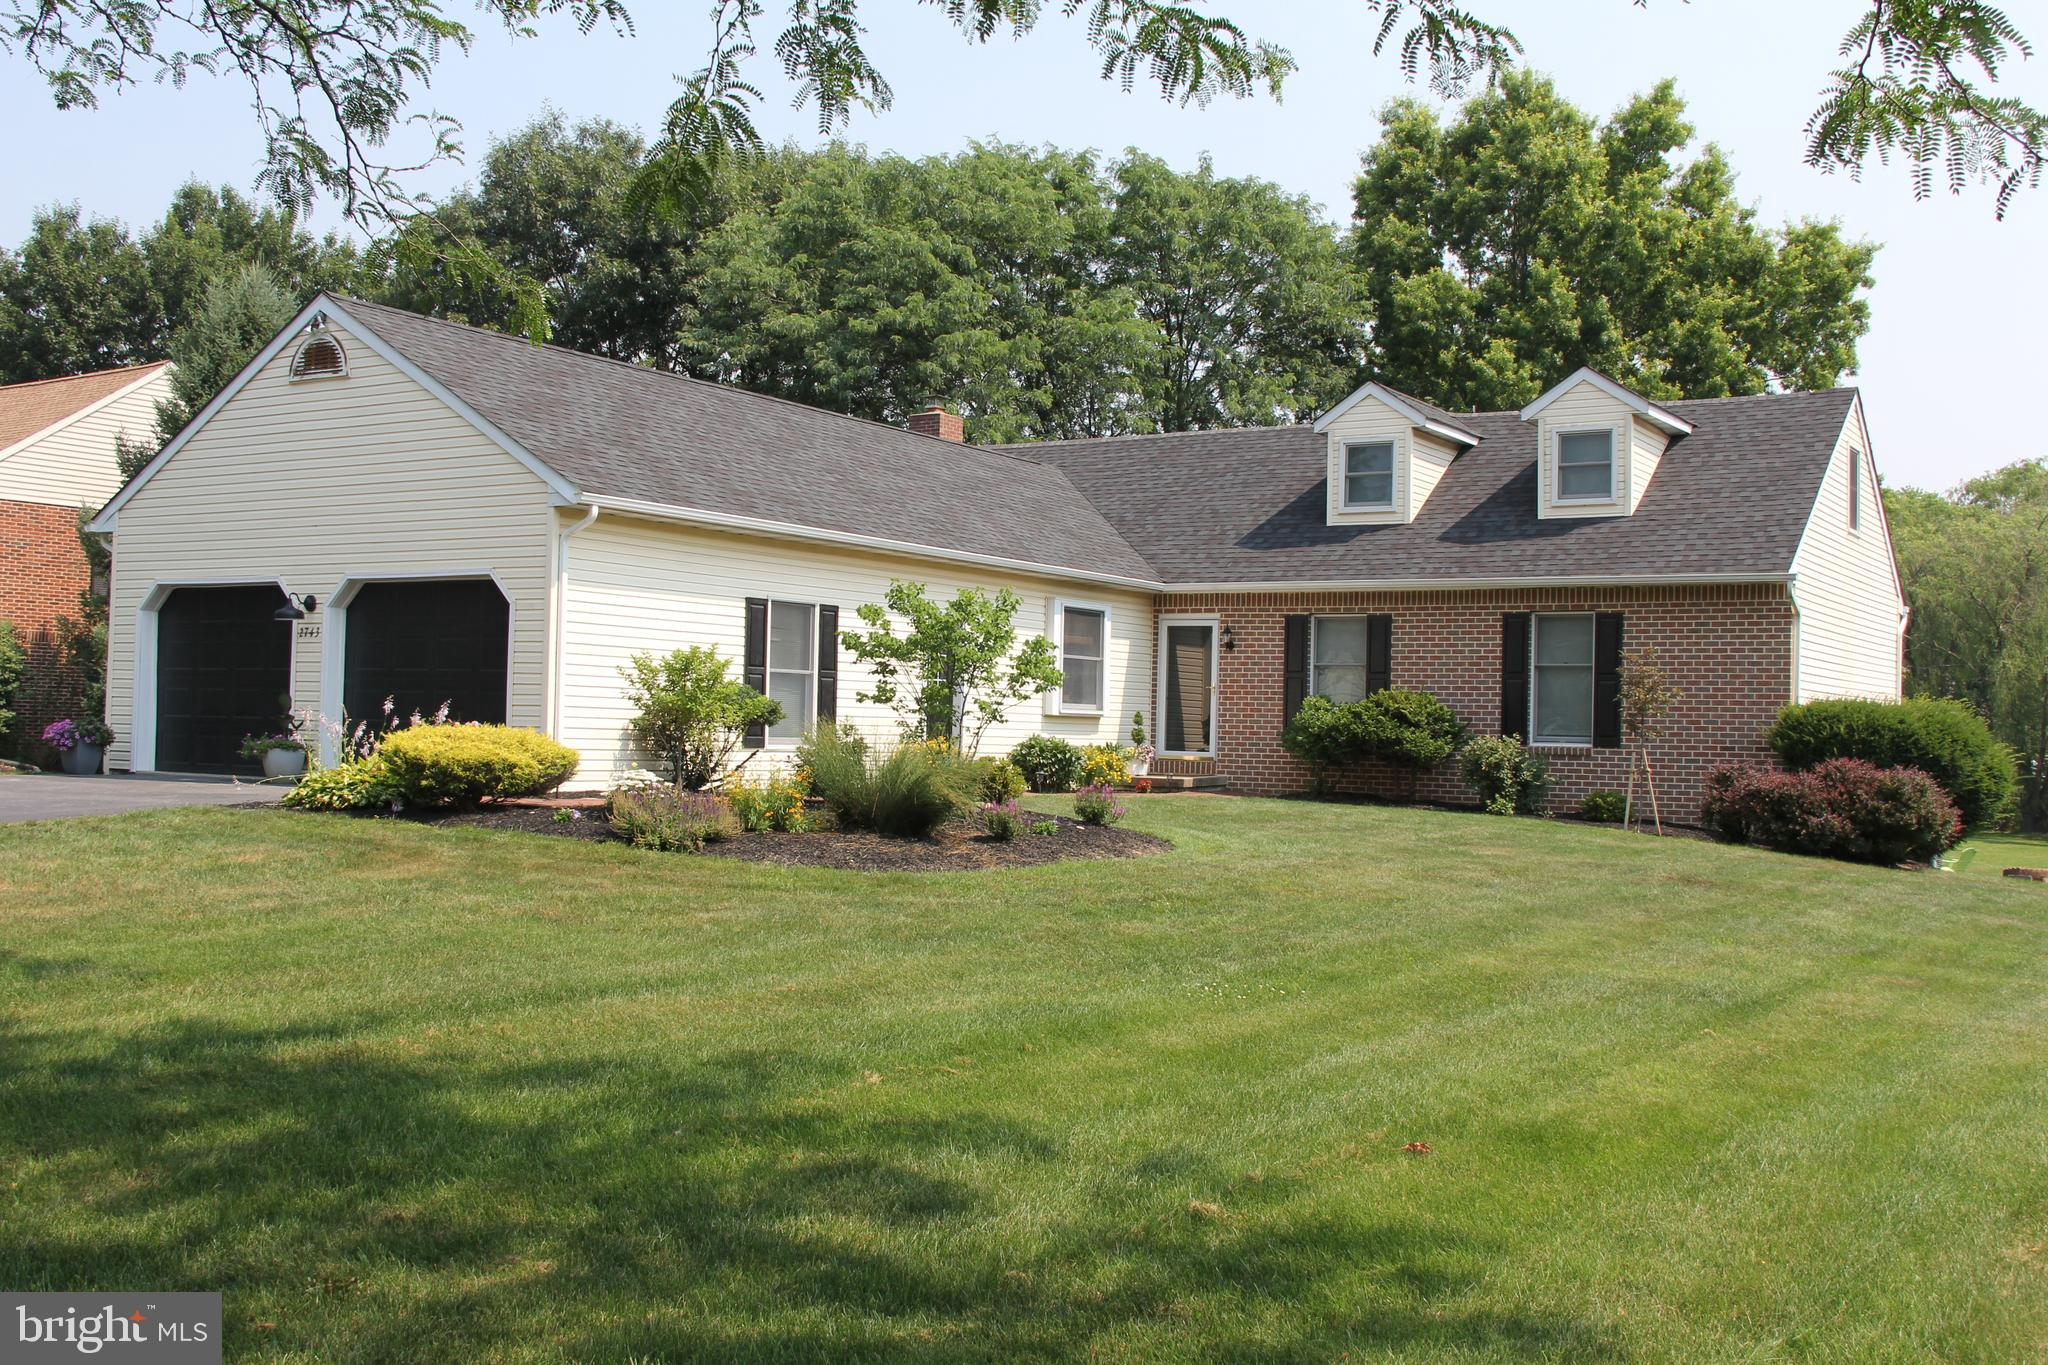 """You have been waiting for the perfect property in Wetherburn and Here It Is! Situated on over an acre of level yard, this unique and elegant cape cod features spacious remodeled kitchen in 2020 with Granite counter tops, engineered bamboo floors, all new stainless steel appliances plus a  large  working island! The Kitchen also sports a side by side Sam Sung """"smart"""" Refrigerator that actually plays music  and many other surprise features! The Stove has a Chef's Professional Working Hood for those serious cooks.  Also have to love the sky light bringing lots of natural light into the work area.   A few New Anderson Windows have been installed and new carpet this past year! New Roof was installed 2019 .Four  larger than life bedrooms two on the main floor and two on the upper level and three full bathrooms.  Open floor plan allows for lots of light and  comfortable living space for even that larger family and perfect for entertaining family and guests! The Family Room opens out on to a large deck that overlooks the back yard with """"privacy plus"""" and plenty of room for field games, gardens, or even a swimming pool for those steaming hot summer days! All Offers to be submitted by 12 noon on Monday July12 and  presented before 5 pm that day .  August 20, 2021 is preferred settlement date. No sliding scale or escalation clauses please."""